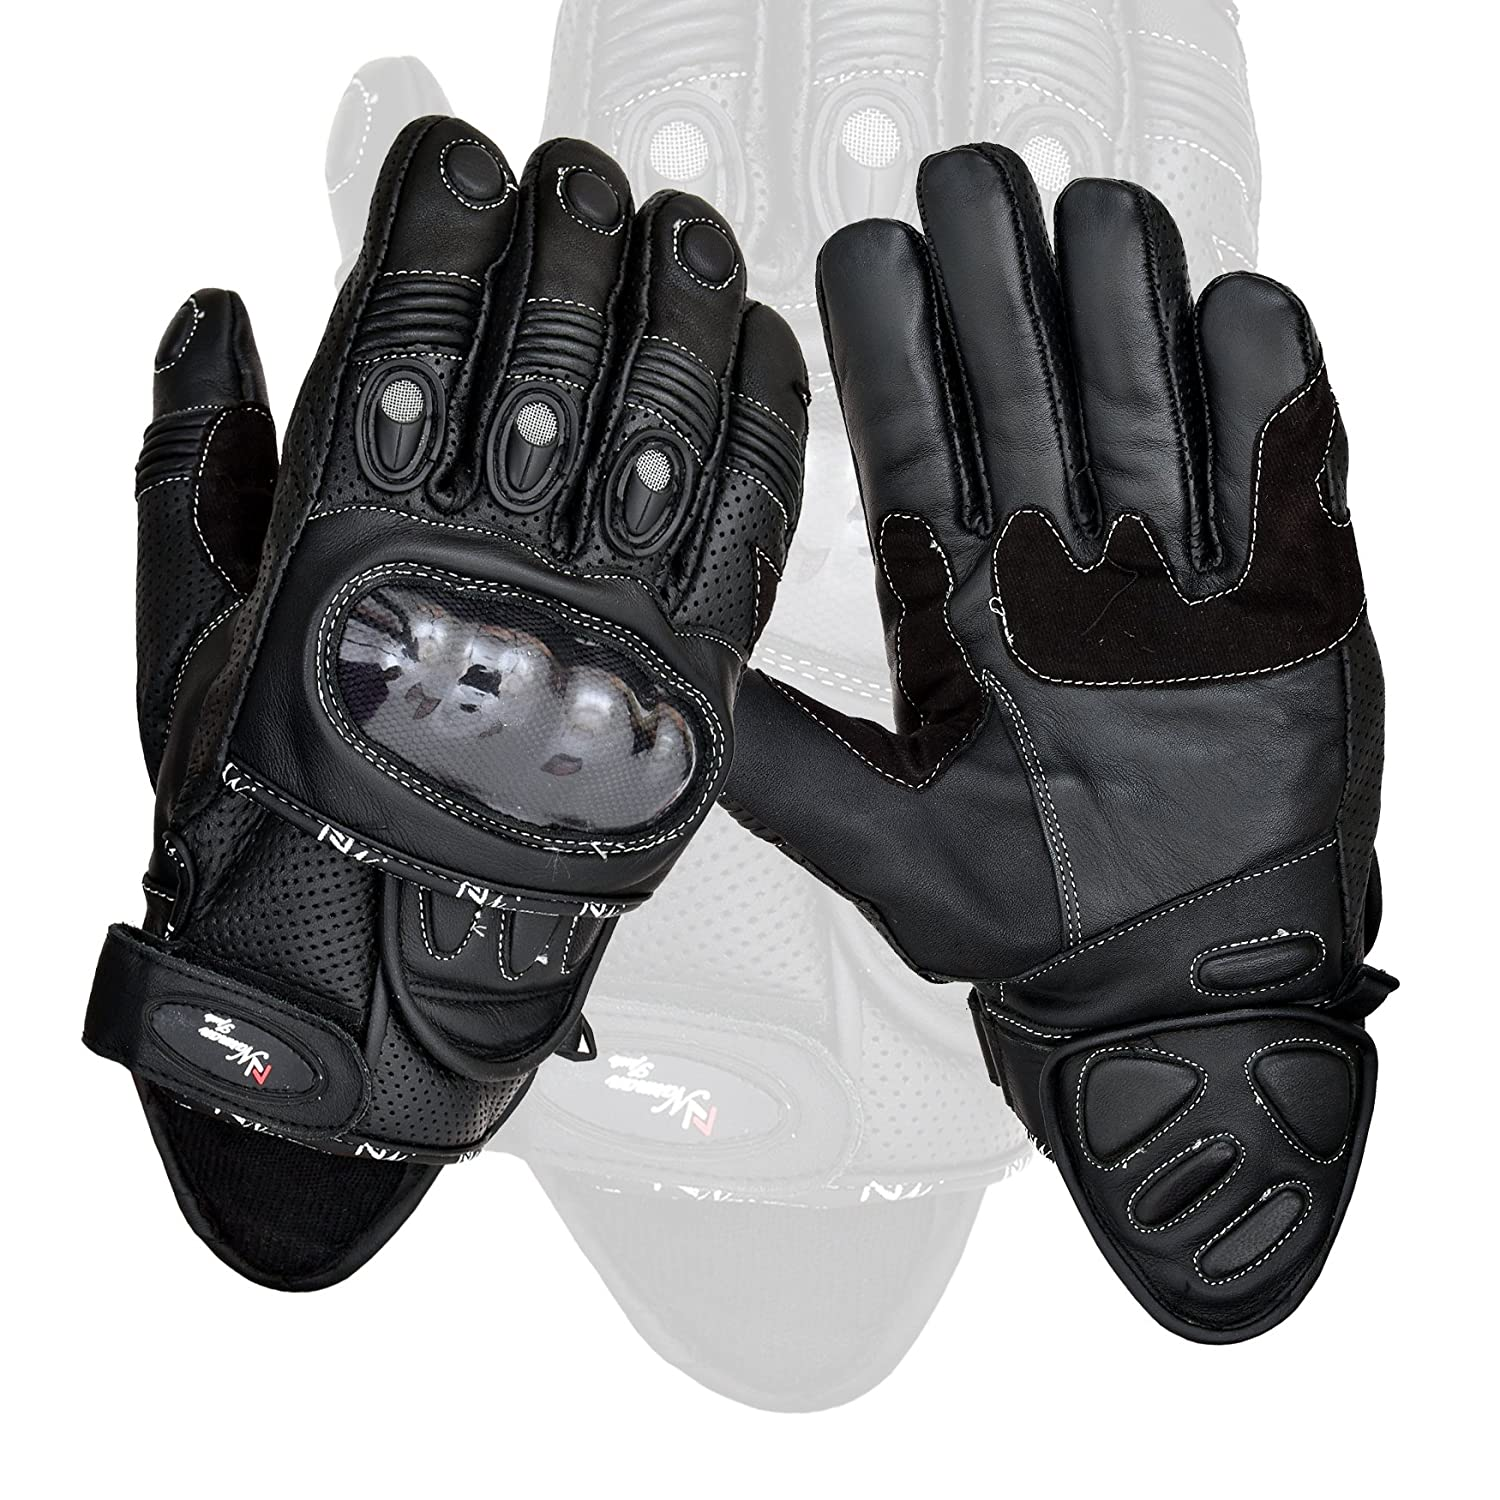 Black Short Leather Knuckle Protection Motorbike Motorcycle Gloves (L)